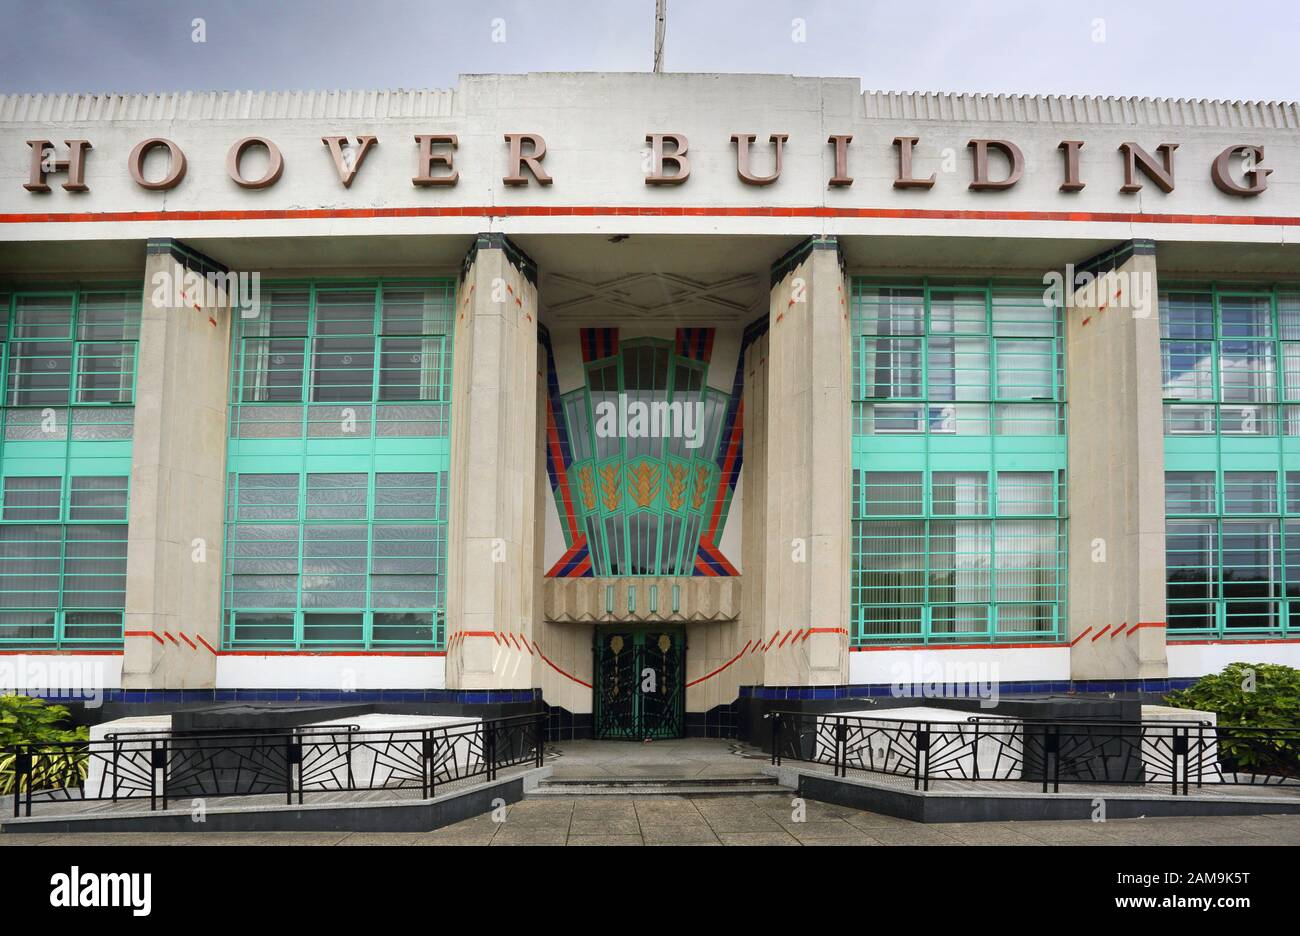 the art deco hoover building in north london Stock Photo